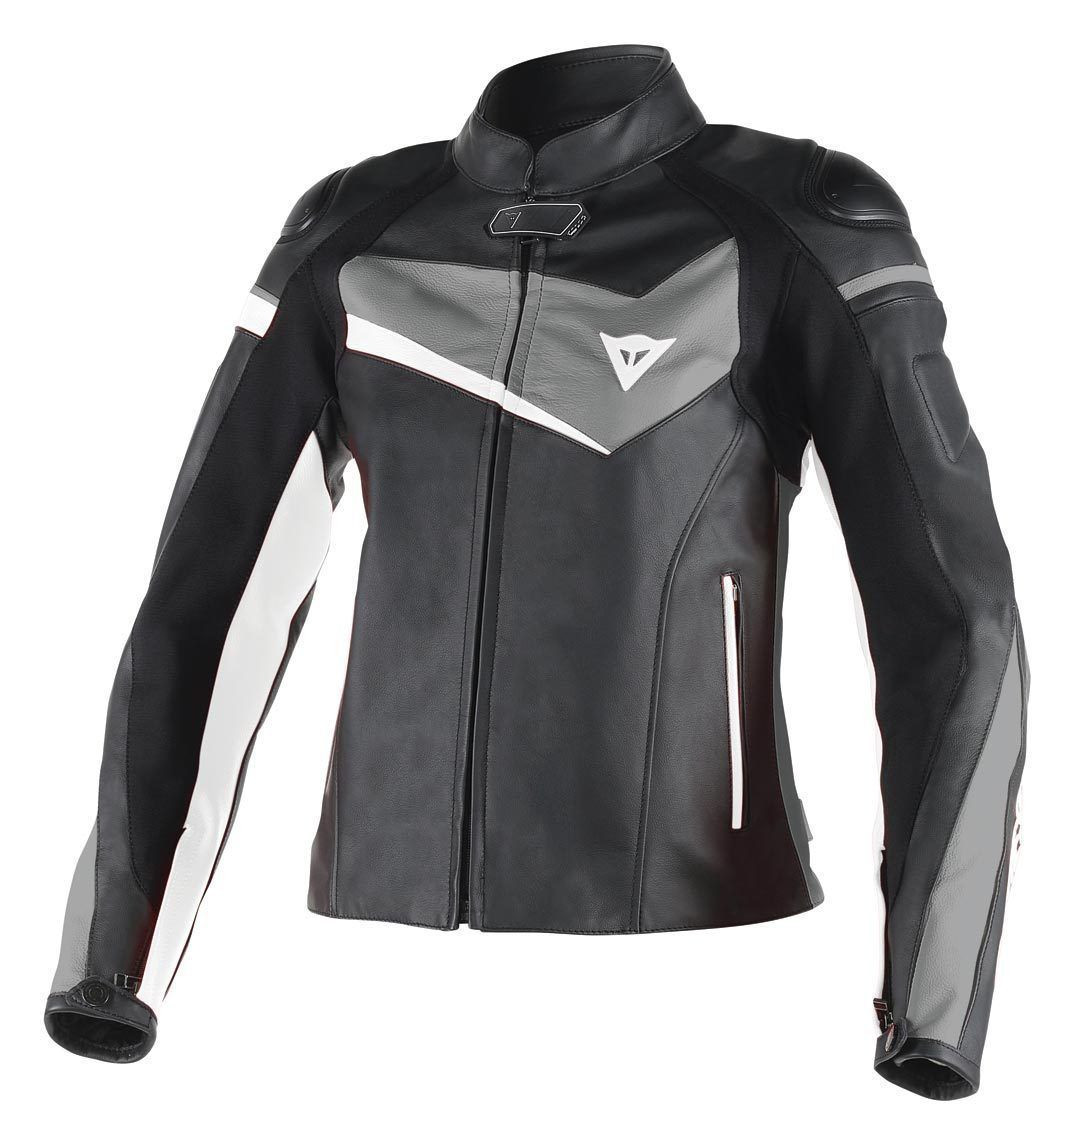 best service 4a874 e83d4 Giacca moto pelle donna Dainese Veloster Lady nero antracite bianco